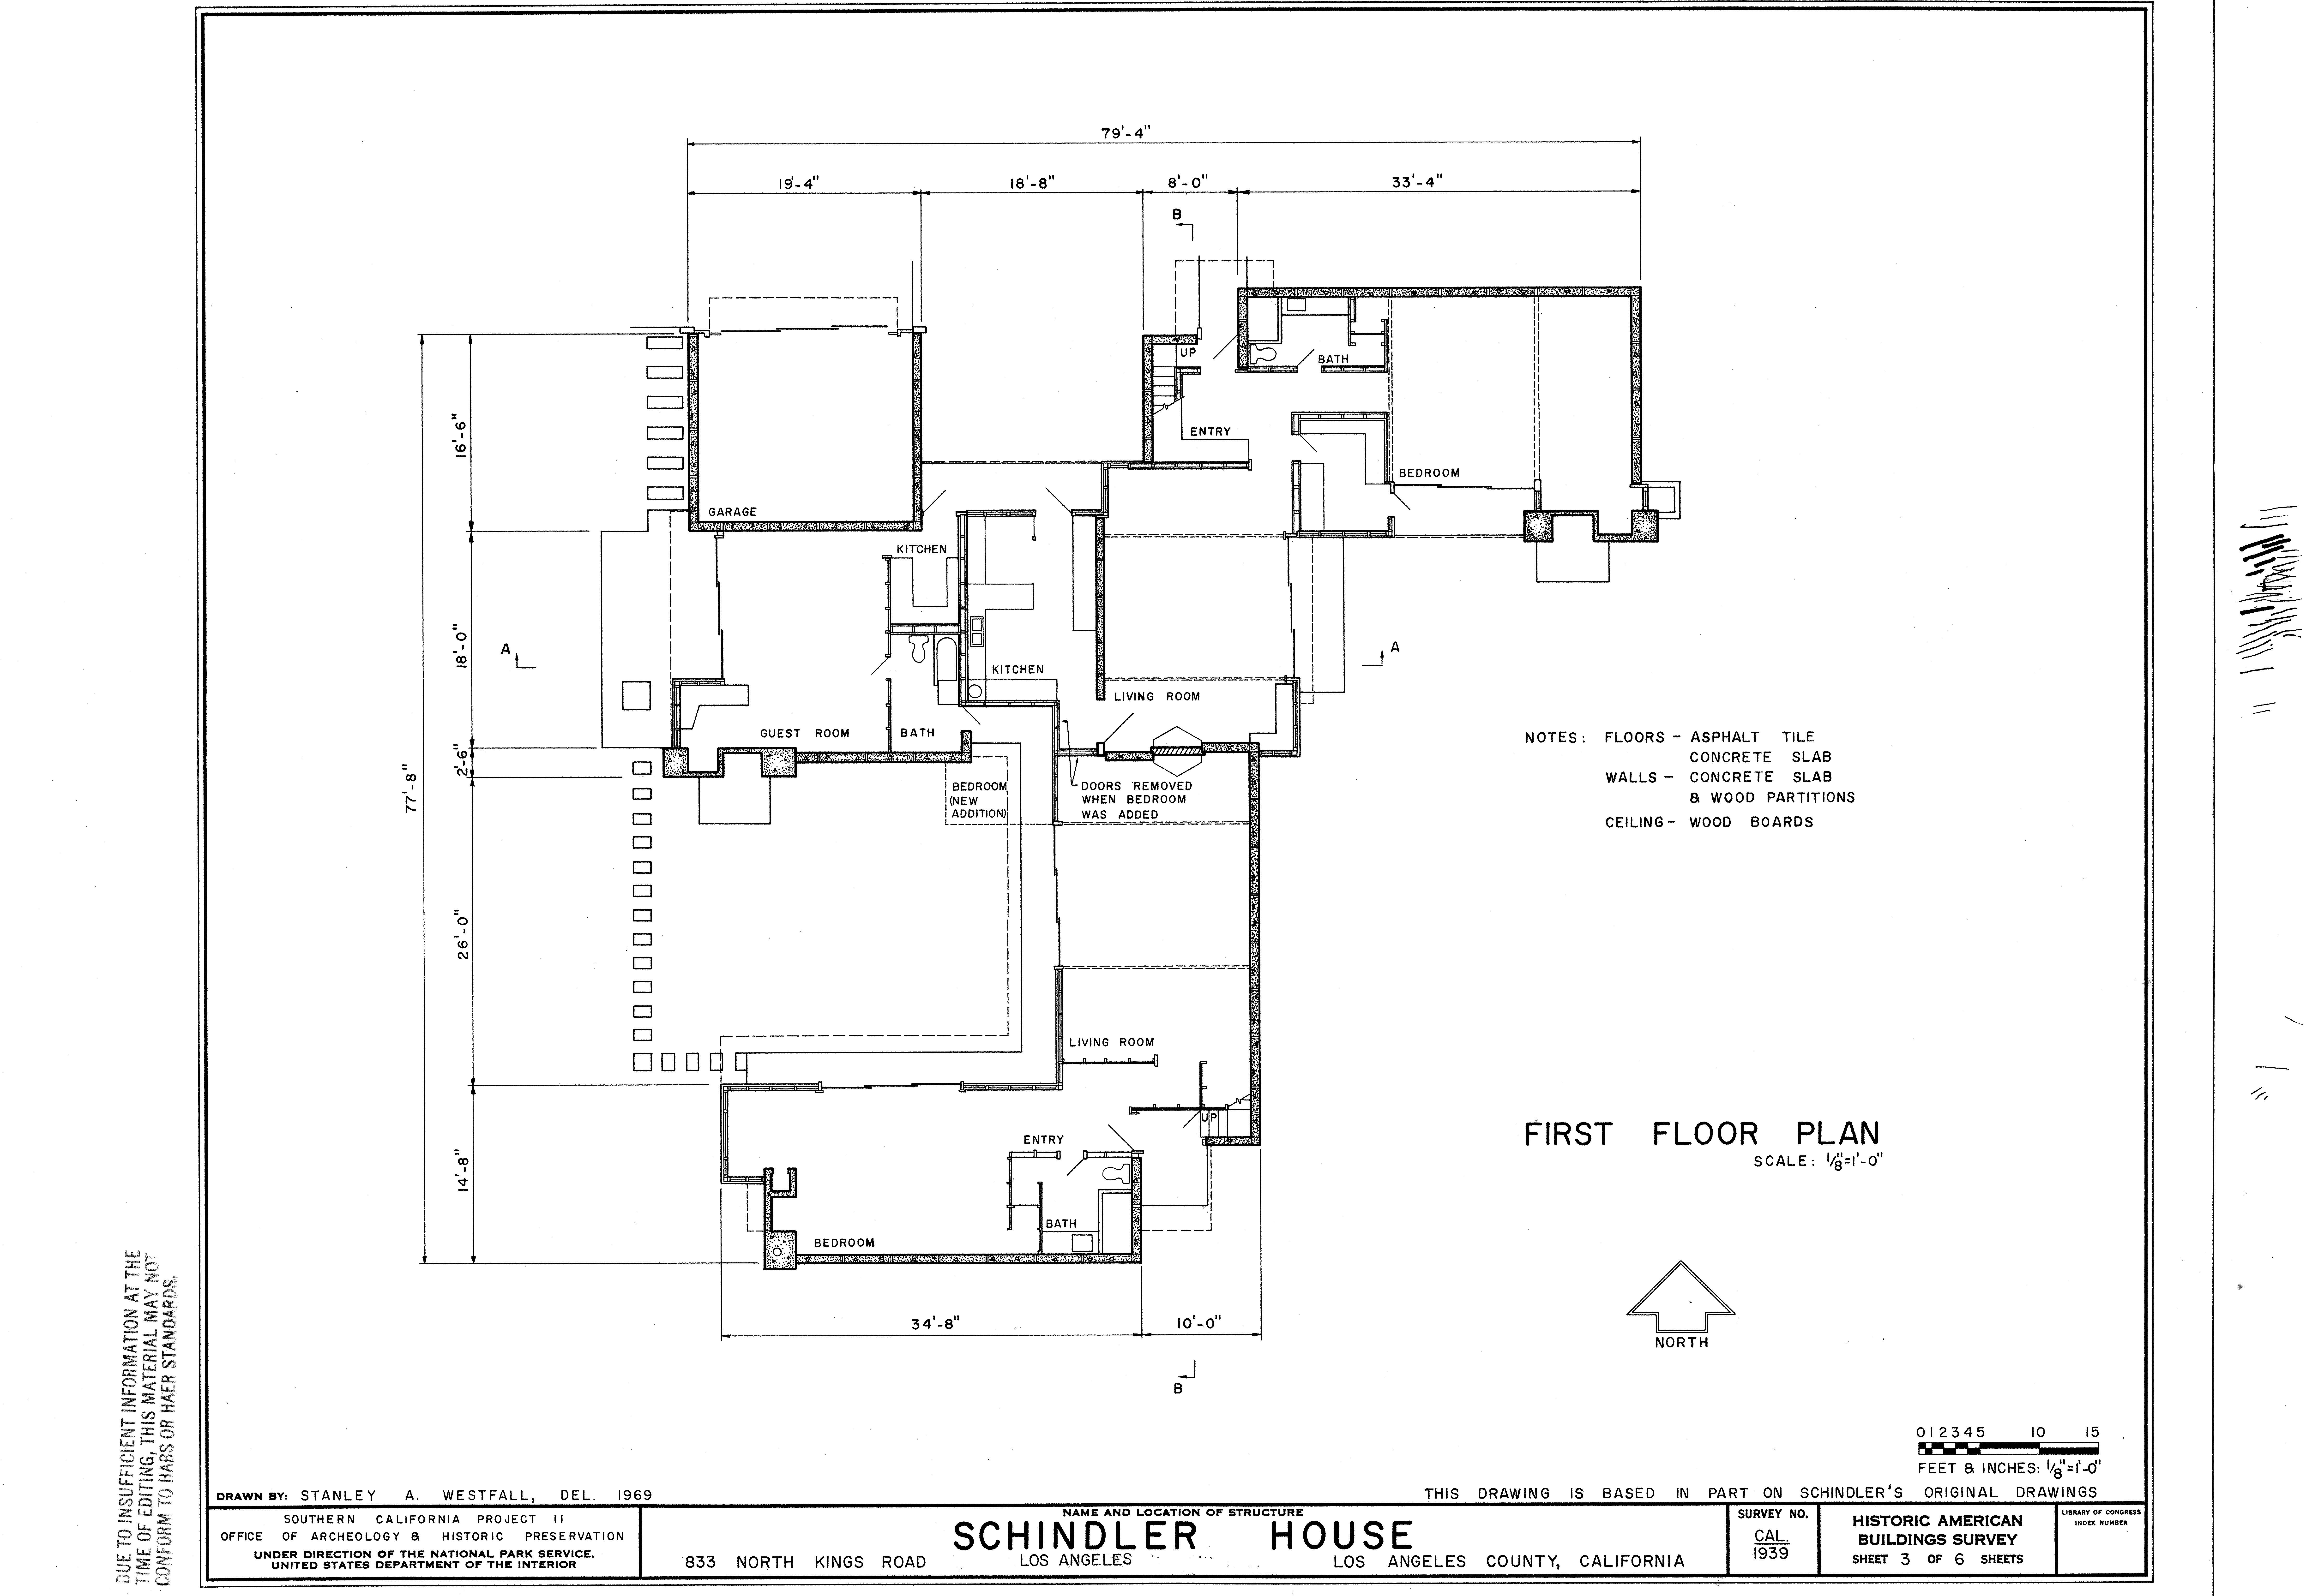 About the 1922 Schindler House in Southern California – Meyer May House Floor Plan